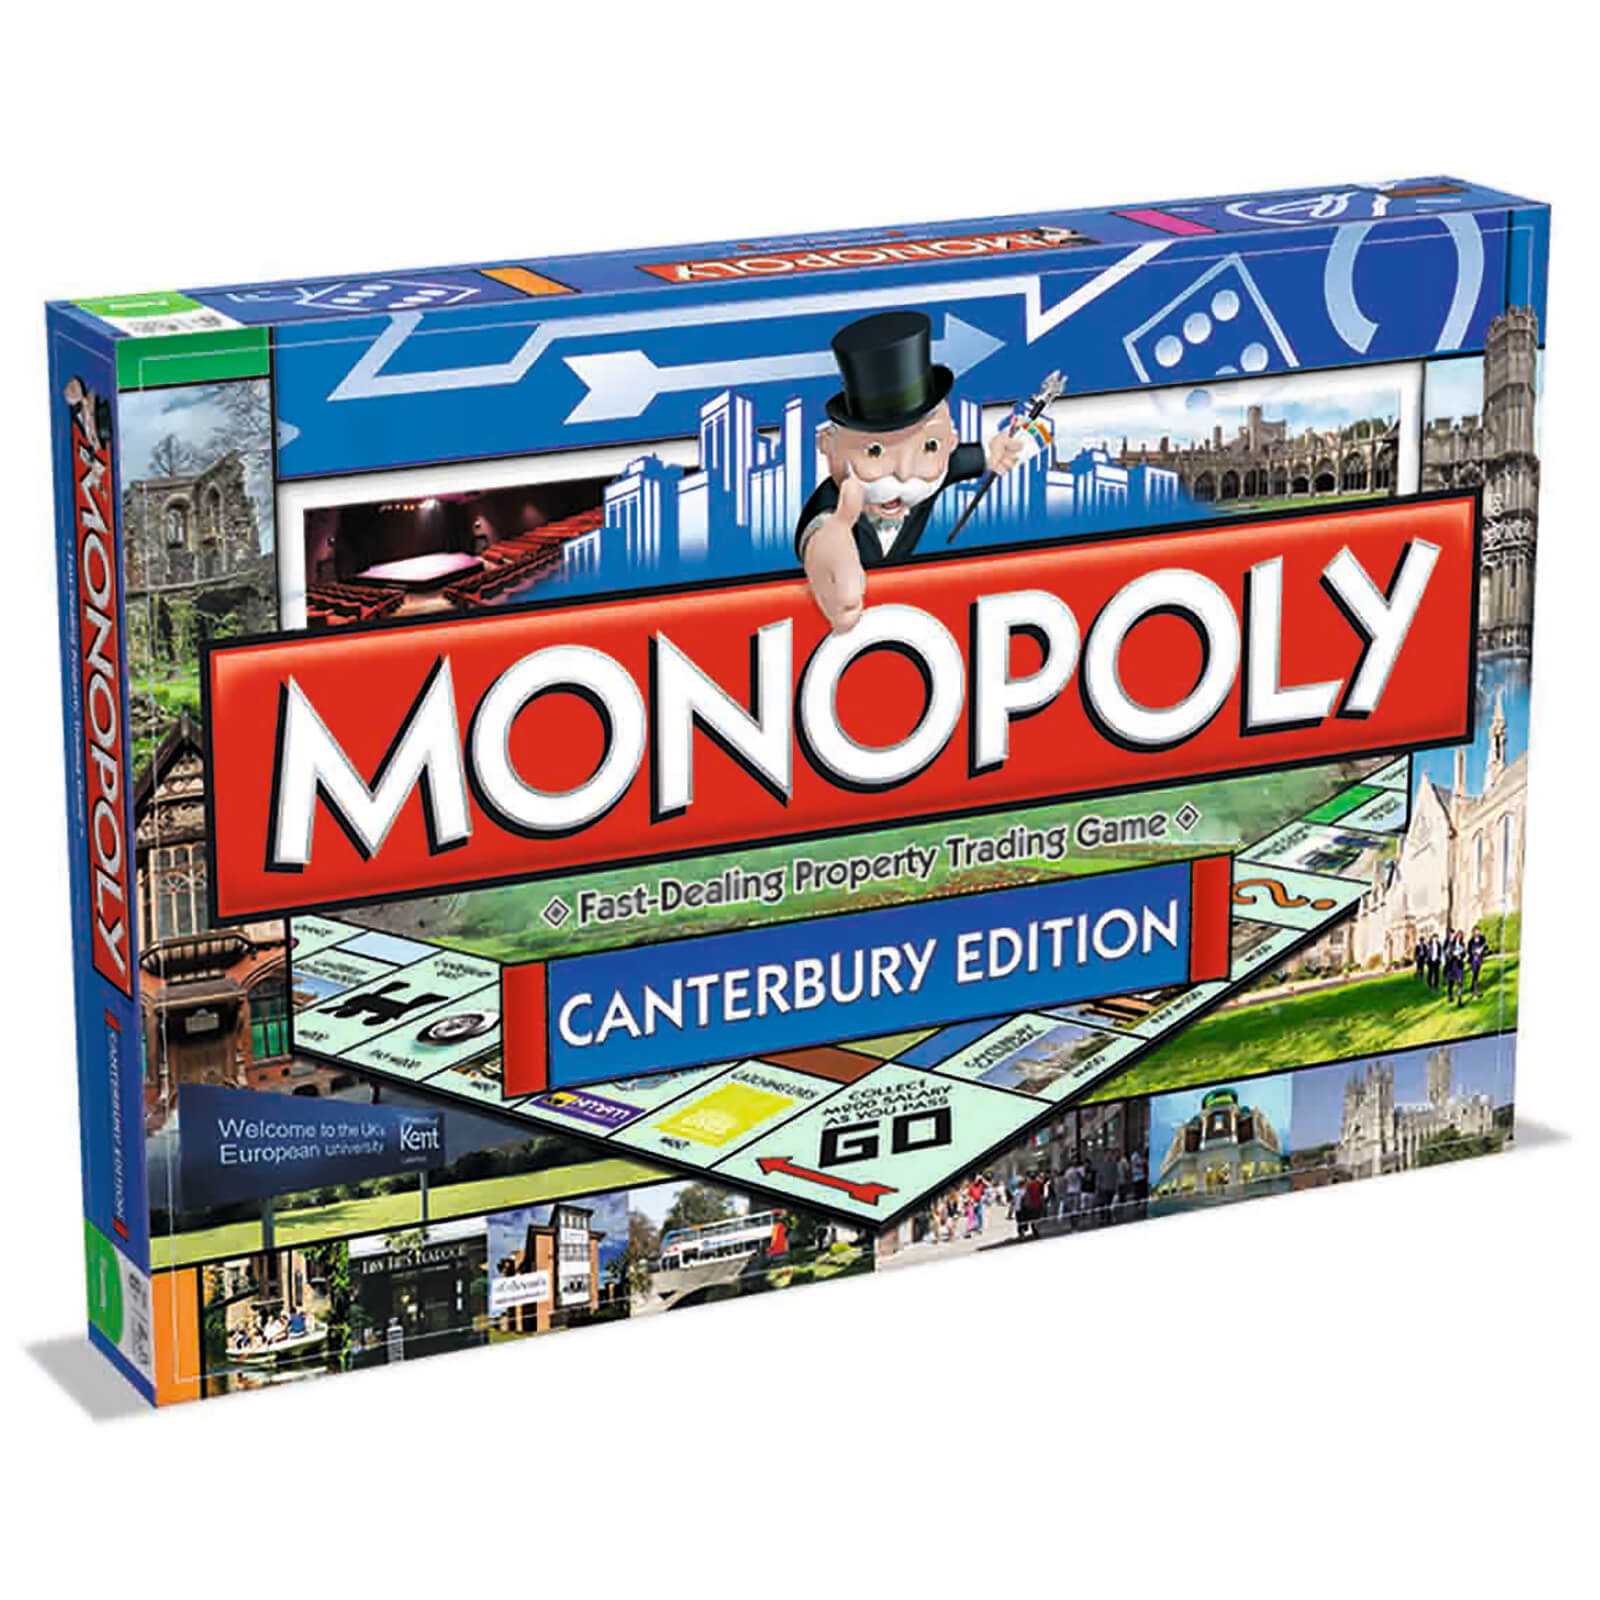 Image of Monopoly Board Game - Canterbury Edition